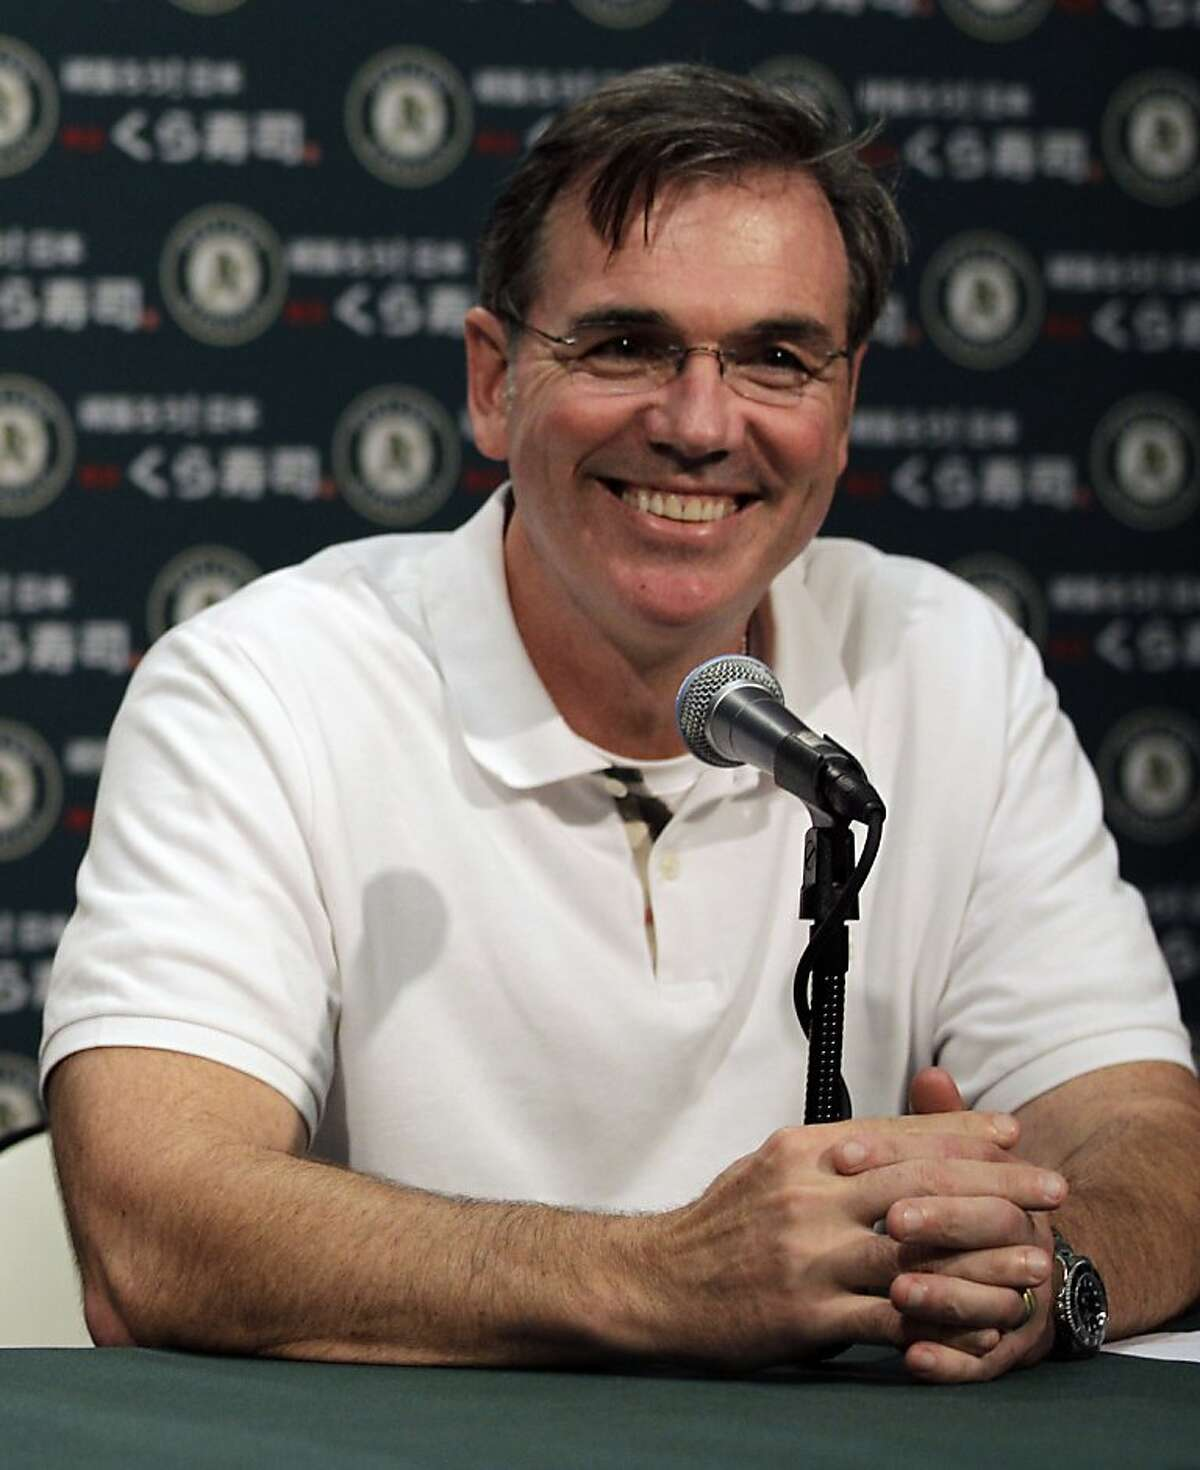 Oakland Athletics general manager Billy Beane smiles during a media conference Wednesday, Sept. 21, 2011, in Oakland, Calif. The Oakland Athletics have reached agreement on a three-year contract to keep Bob Melvin as their permanent manager. The 49-year-old Melvin took over in an interim capacity for the fired Bob Geren in June and has a 42-49 record after Tuesday night's 7-2 loss to the AL West-leading Texas Rangers at the Coliseum. Geren's dismissal marked the first time Oakland fired a manager during the season in a quarter century.